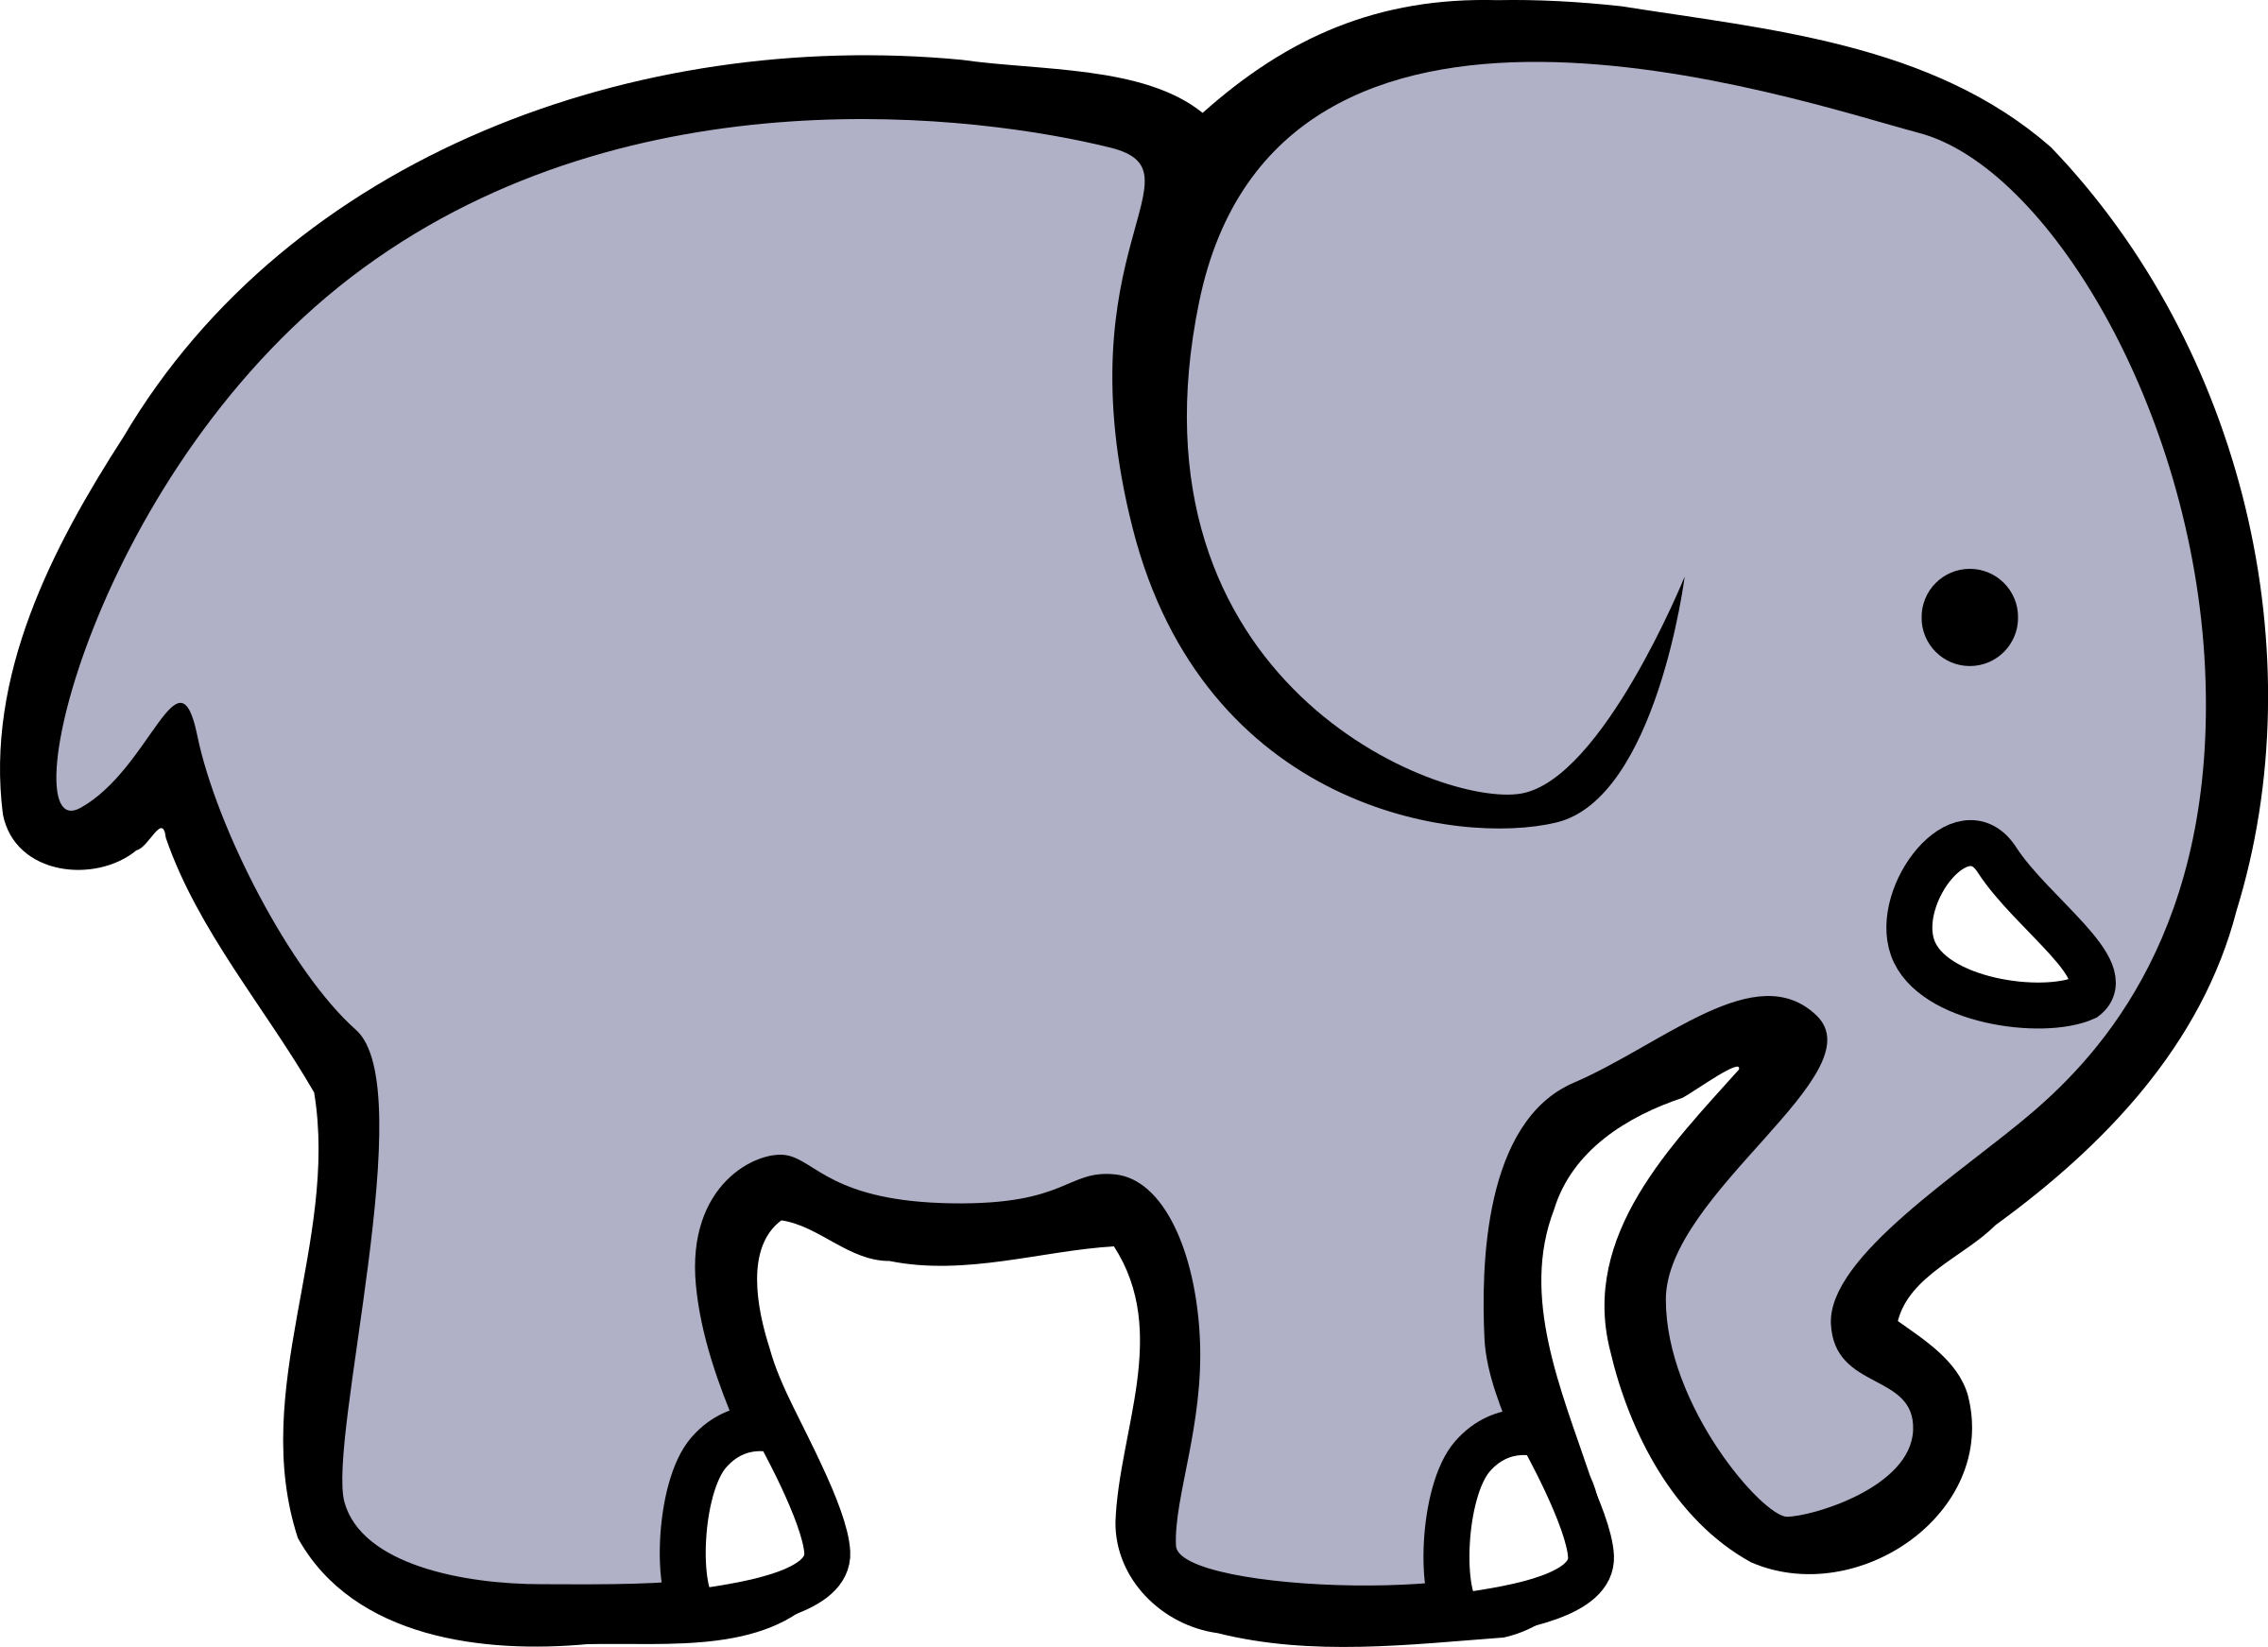 Elephant clip art transparent background. D cartoon icons